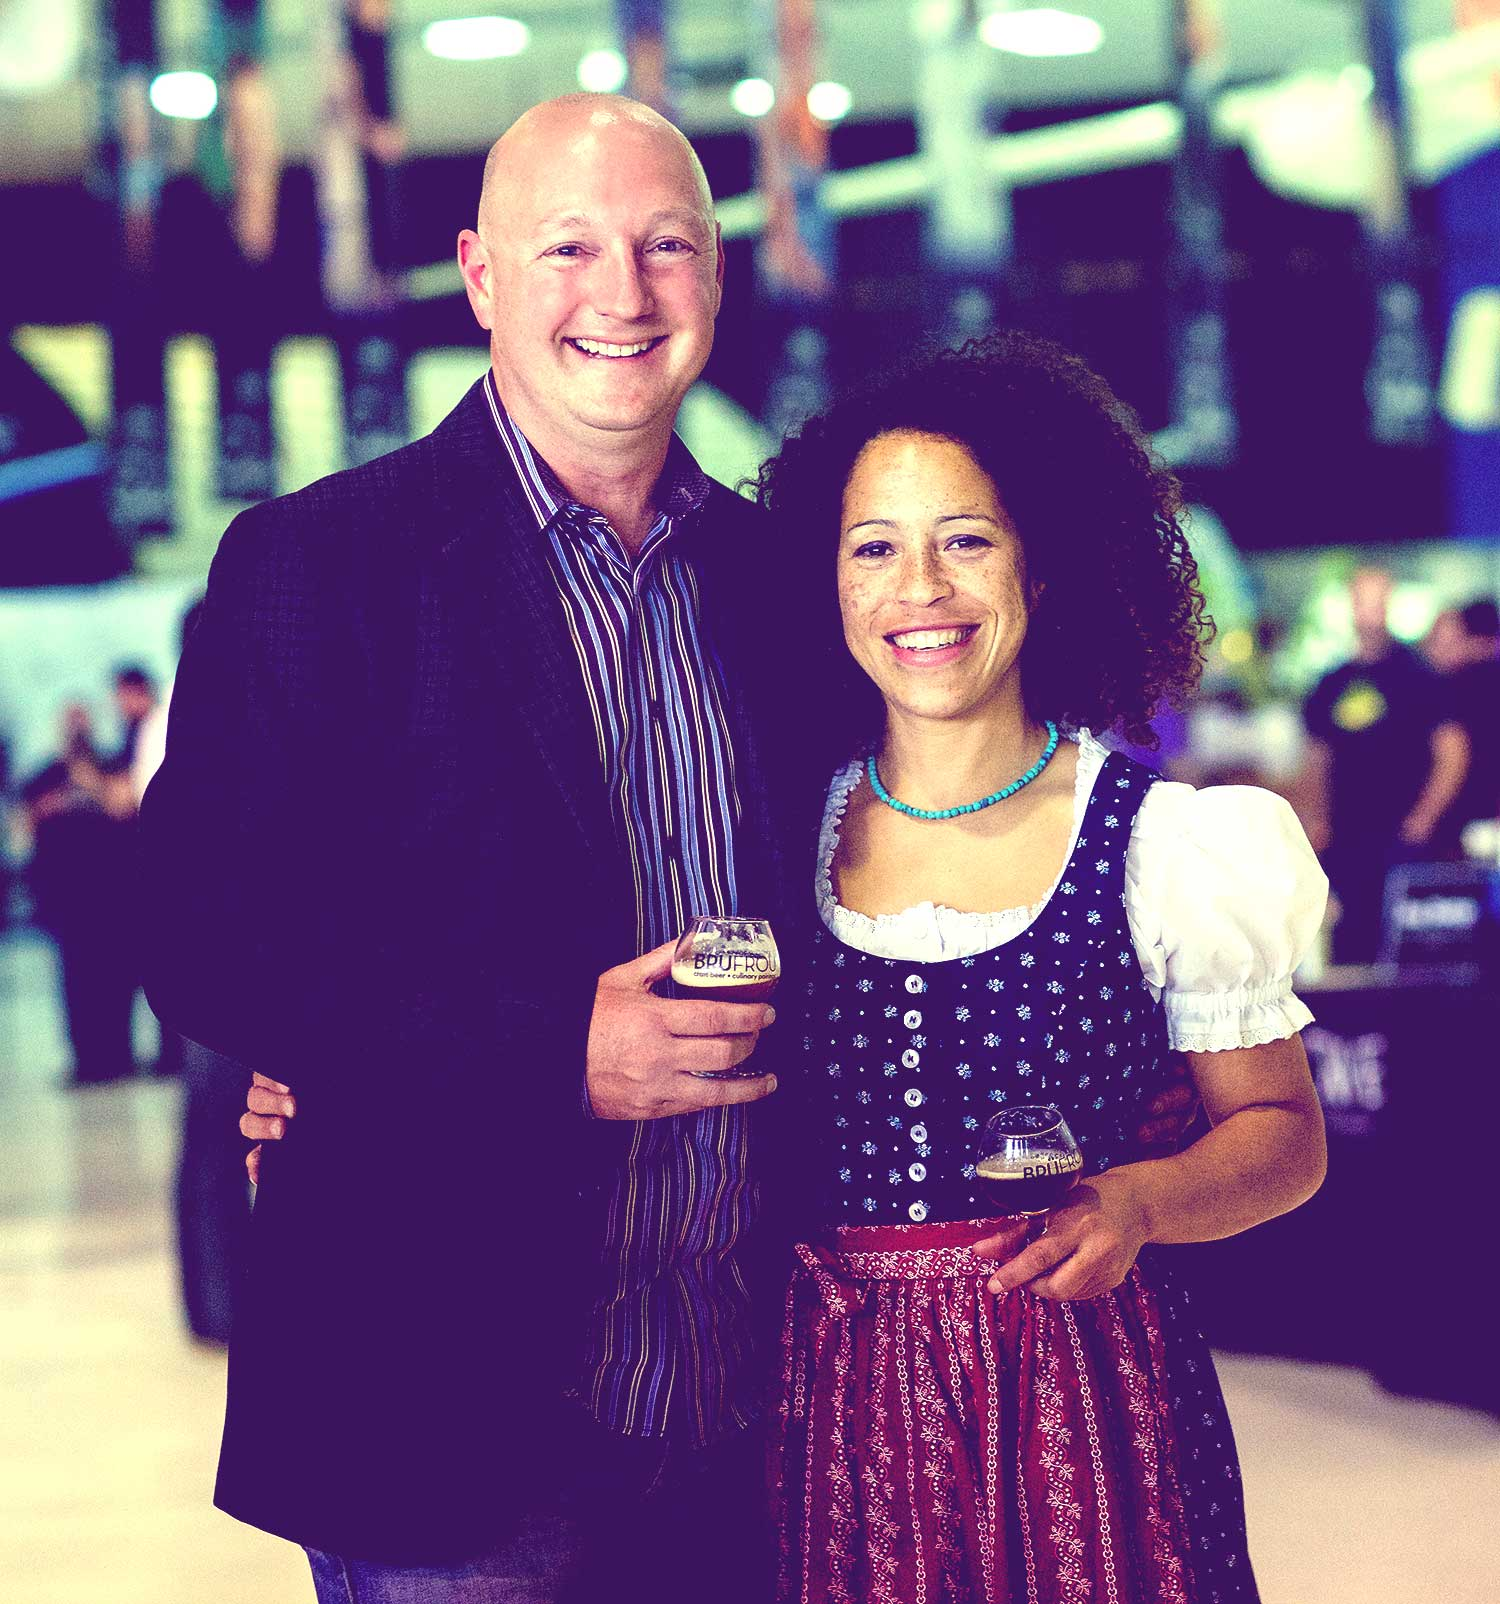 BrüFrou: craft beer + culinary pairing events